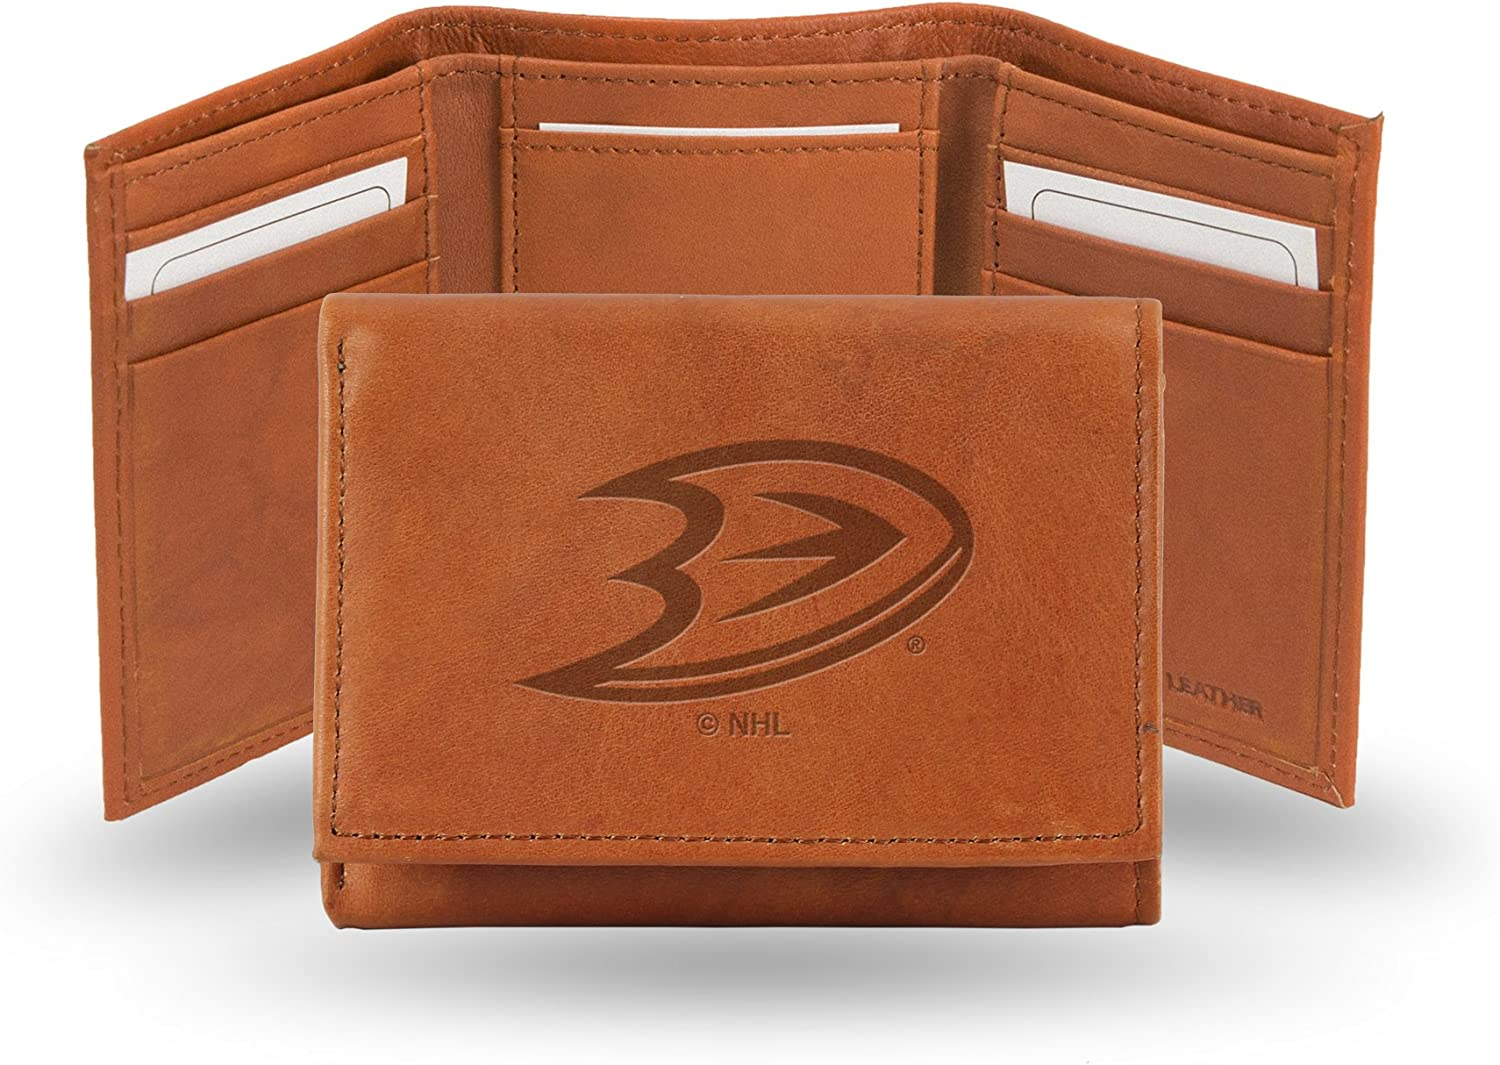 Calgary Flames NHL Embroidered Leather Billfold Wallet NEW in Gift Tin